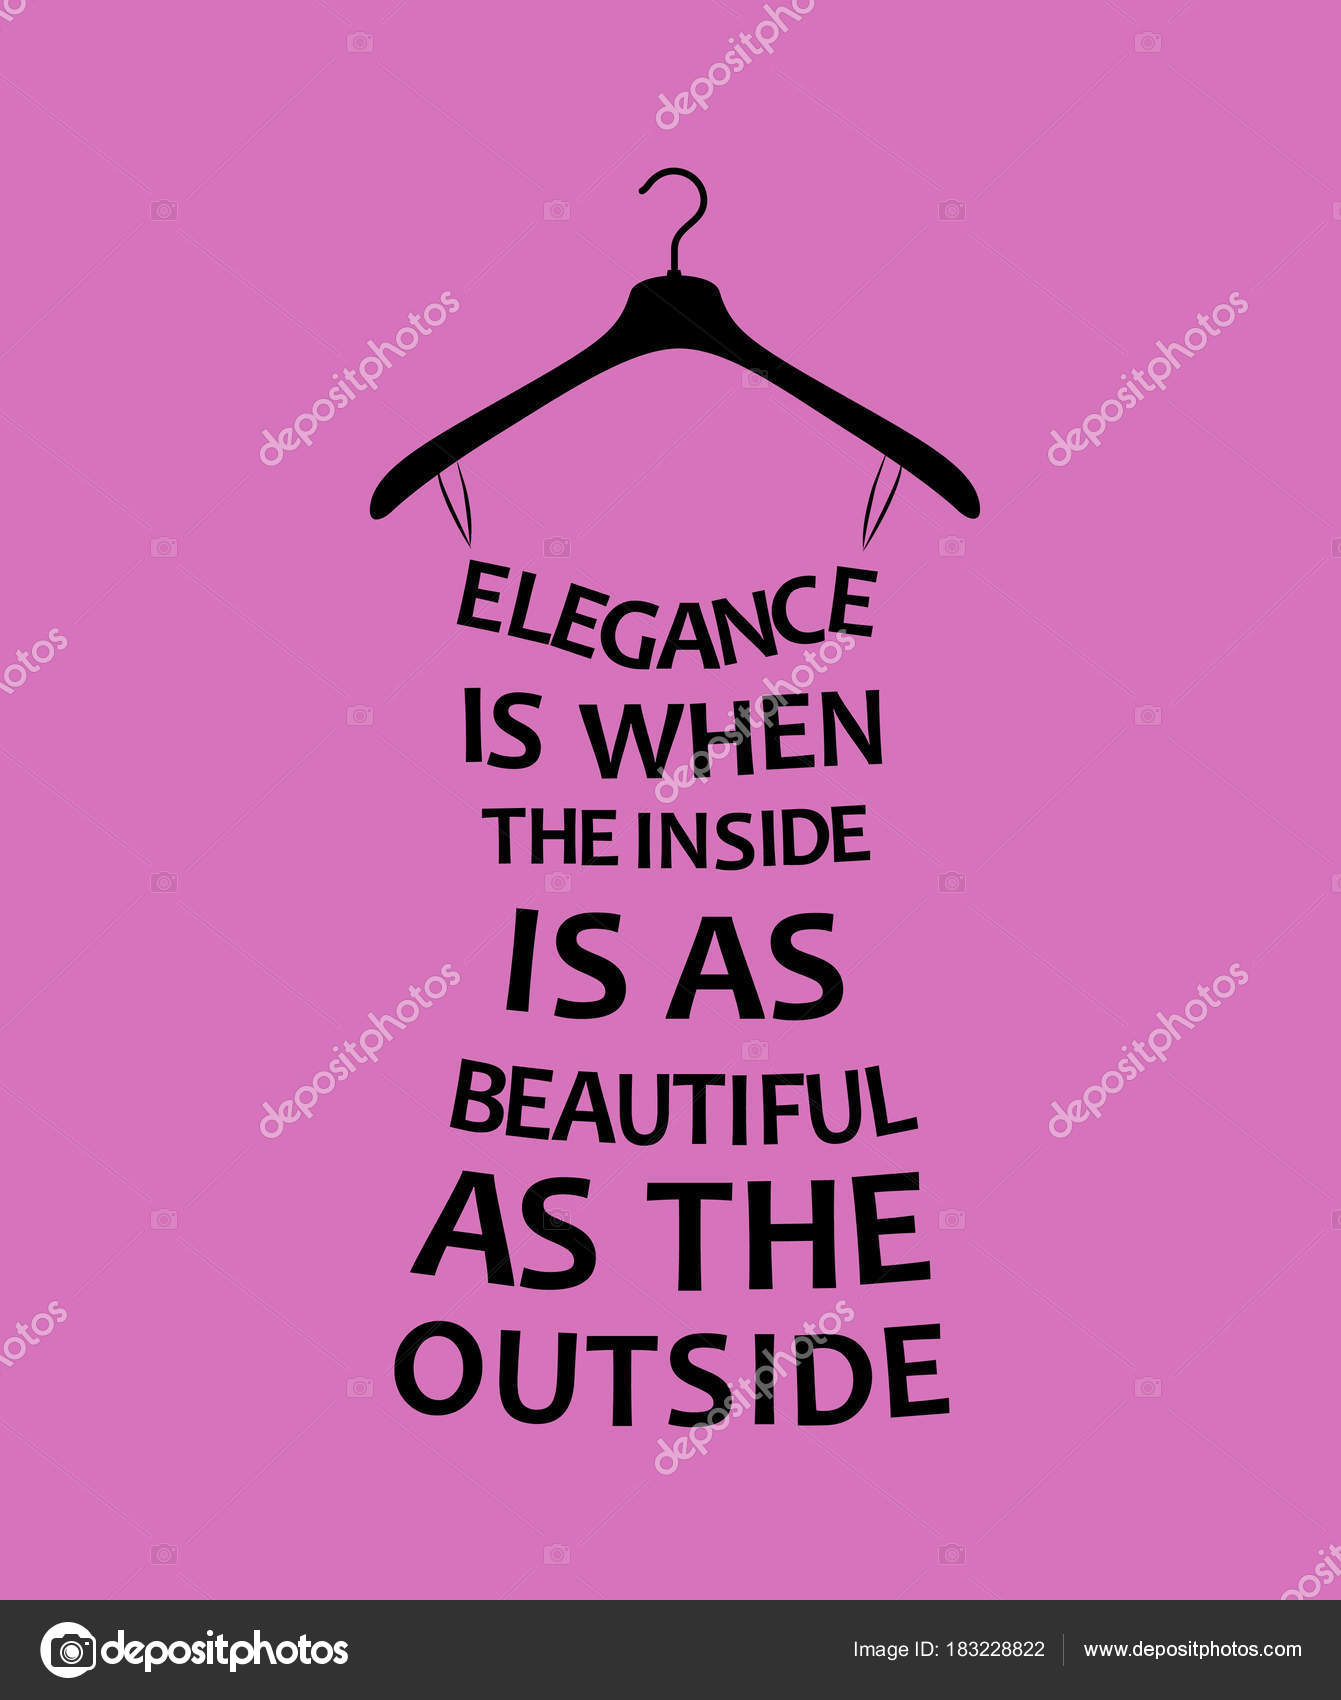 Elegance Quotes Fashion Woman Dress Quote Elegance Vector Stock Vector C Lagodka 183228822